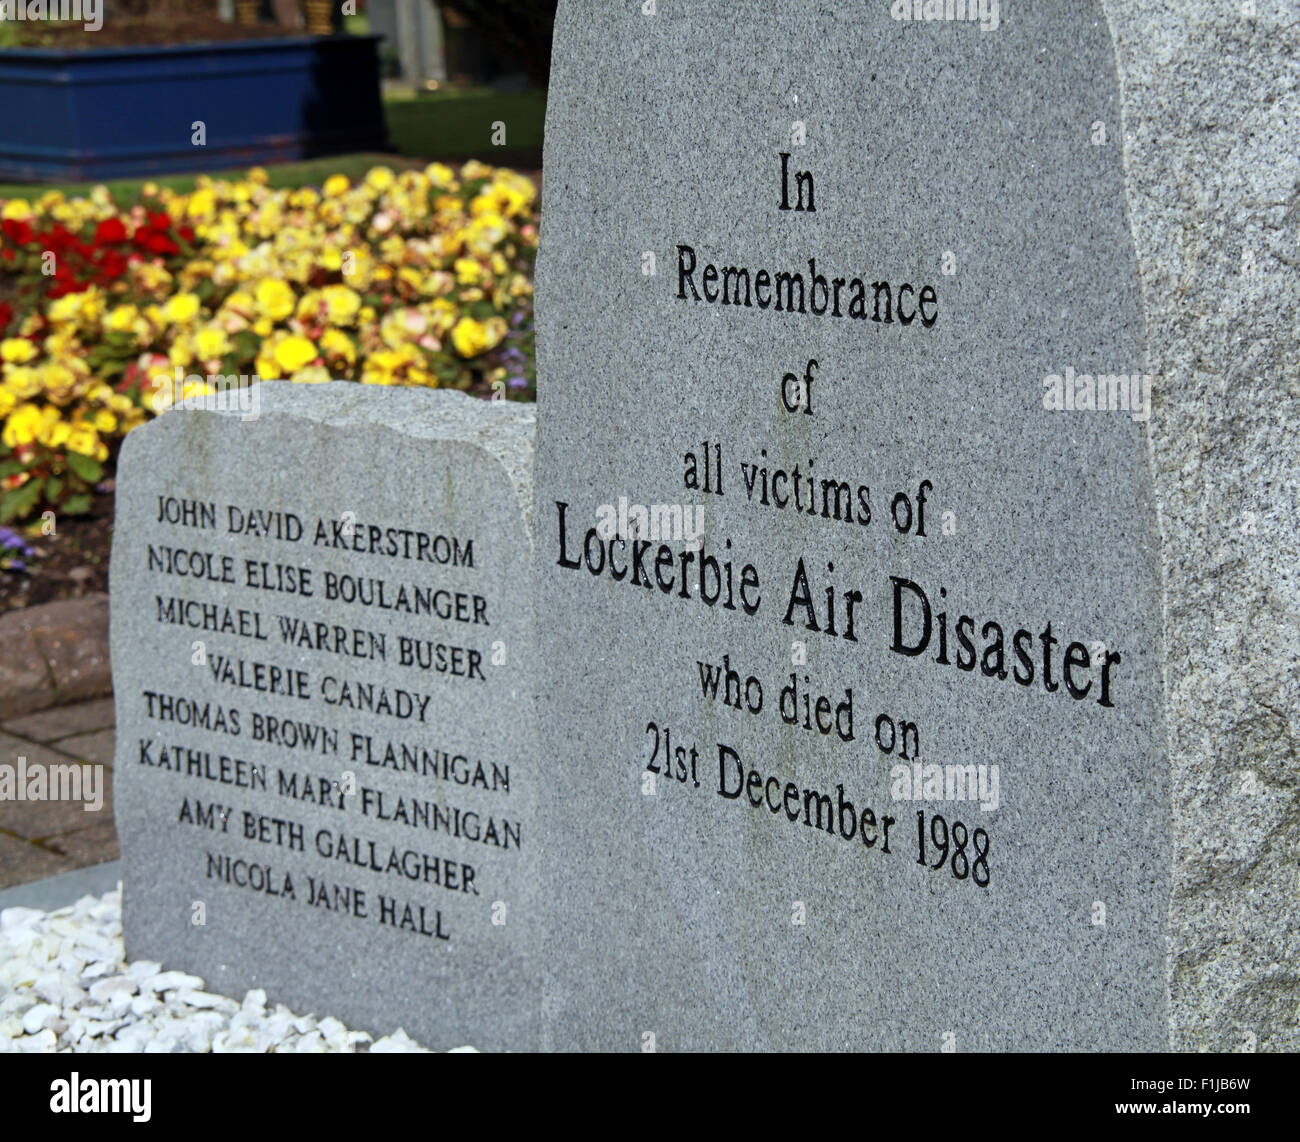 Close-up,Scotland,Lodge,Visitors,Centre,DLVC,Trust,Lockerbie,Memorial,Scotland,Victims,Pan,Am,PanAm,flight,103,bomb,bombing,terrorist,December,1988,attack,crash,dead,site,21/12/1988,270,victims,Scottish,Town,conspiracy,blast,Tundergarth,Room,garden,of,Dryfesdale,Cemetery,news,Cultural,u,New York,GoTonySmith,Lodge,Visitors,Centre,DLVC,Trust,Lockerbie,Memorial,Scotland,Victims,Pan,Am,PanAm,flight,103,bomb,bombing,terrorist,December,1988,attack,crash,dead,site,21/12/1988,270,victims,Scottish,Town,conspiracy,blast,Tundergarth,Room,garden,of,Dryfesdale,Cemetery,news,Cultural,understanding,remembering,innocent,transatlantic,Frankfurt,Detroit,Libyan,Libya,Colonel Muammar Gaddafi,civil,case,compensation,terrorism,PA103,30,30years,years,Syracuse,University,SU,family,collections,Story,Archive,Archives,40,35,Timeline,saga,disaster,air,Scholars,program,programs,remembrance,Clipper Maid of the Seas,N739PA,Boeing,727,plane,aircraft,Scotland,UK,United Kingdom,GB,Great Britain,resting,place,Buy Pictures of,Buy Images Of,New York,al megrahi,30 Years